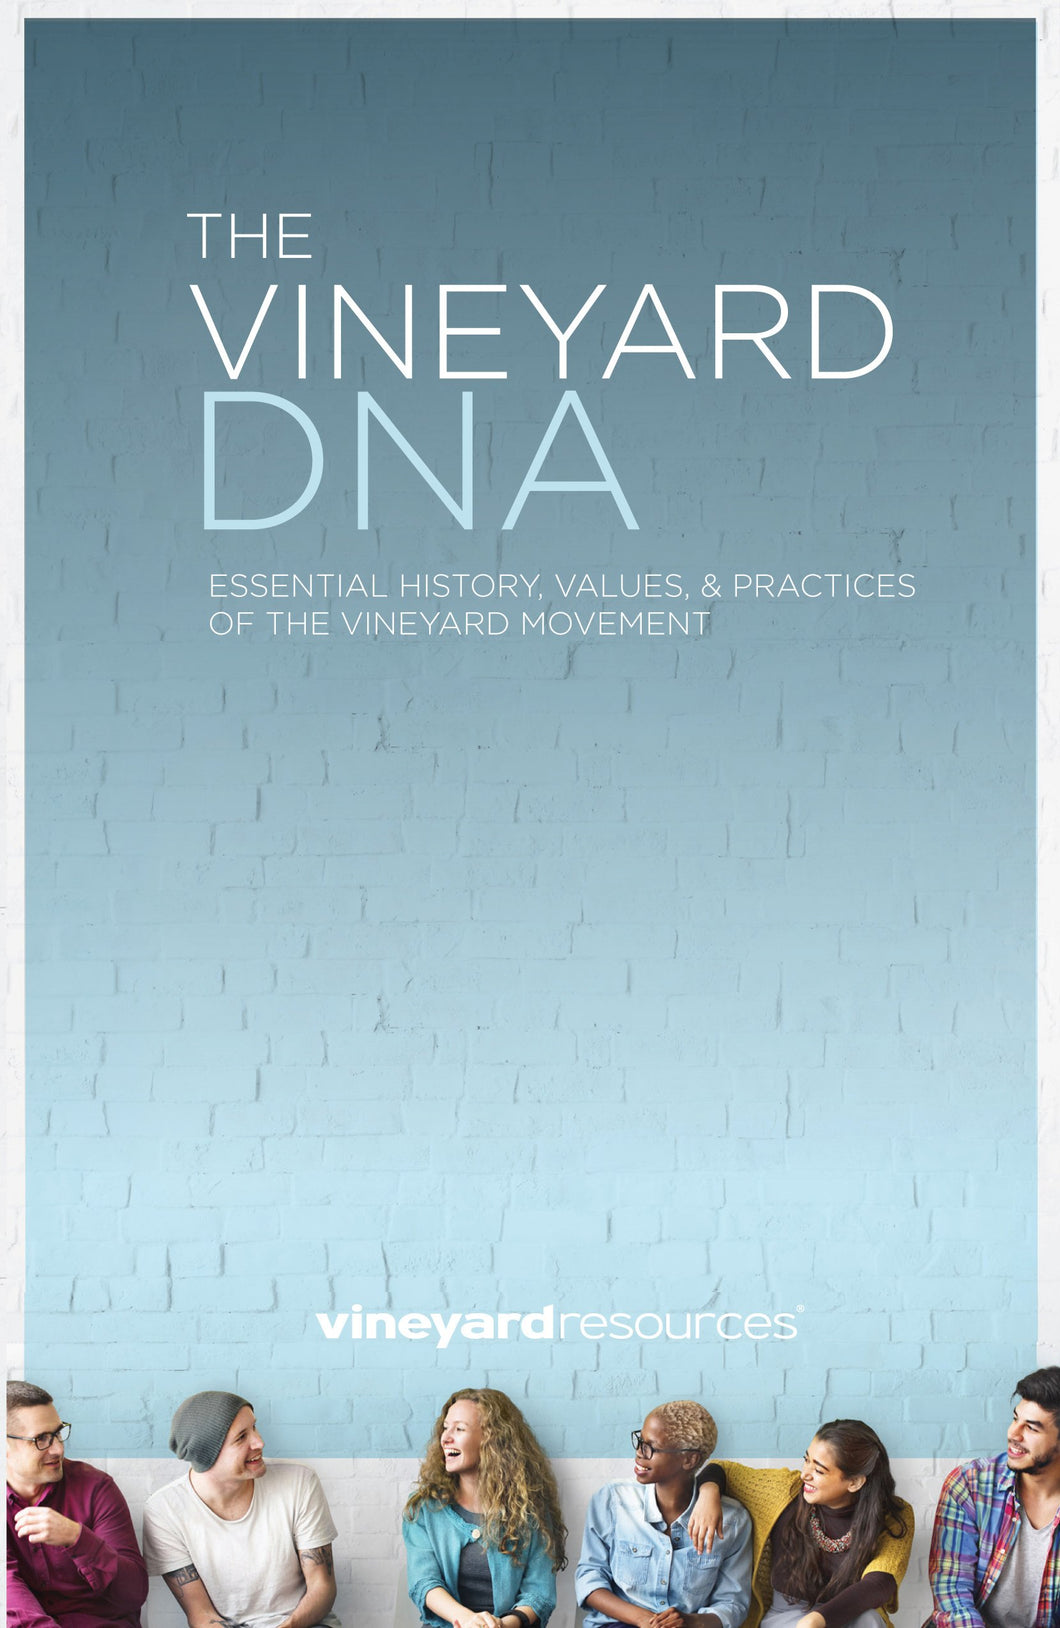 The Vineyard DNA